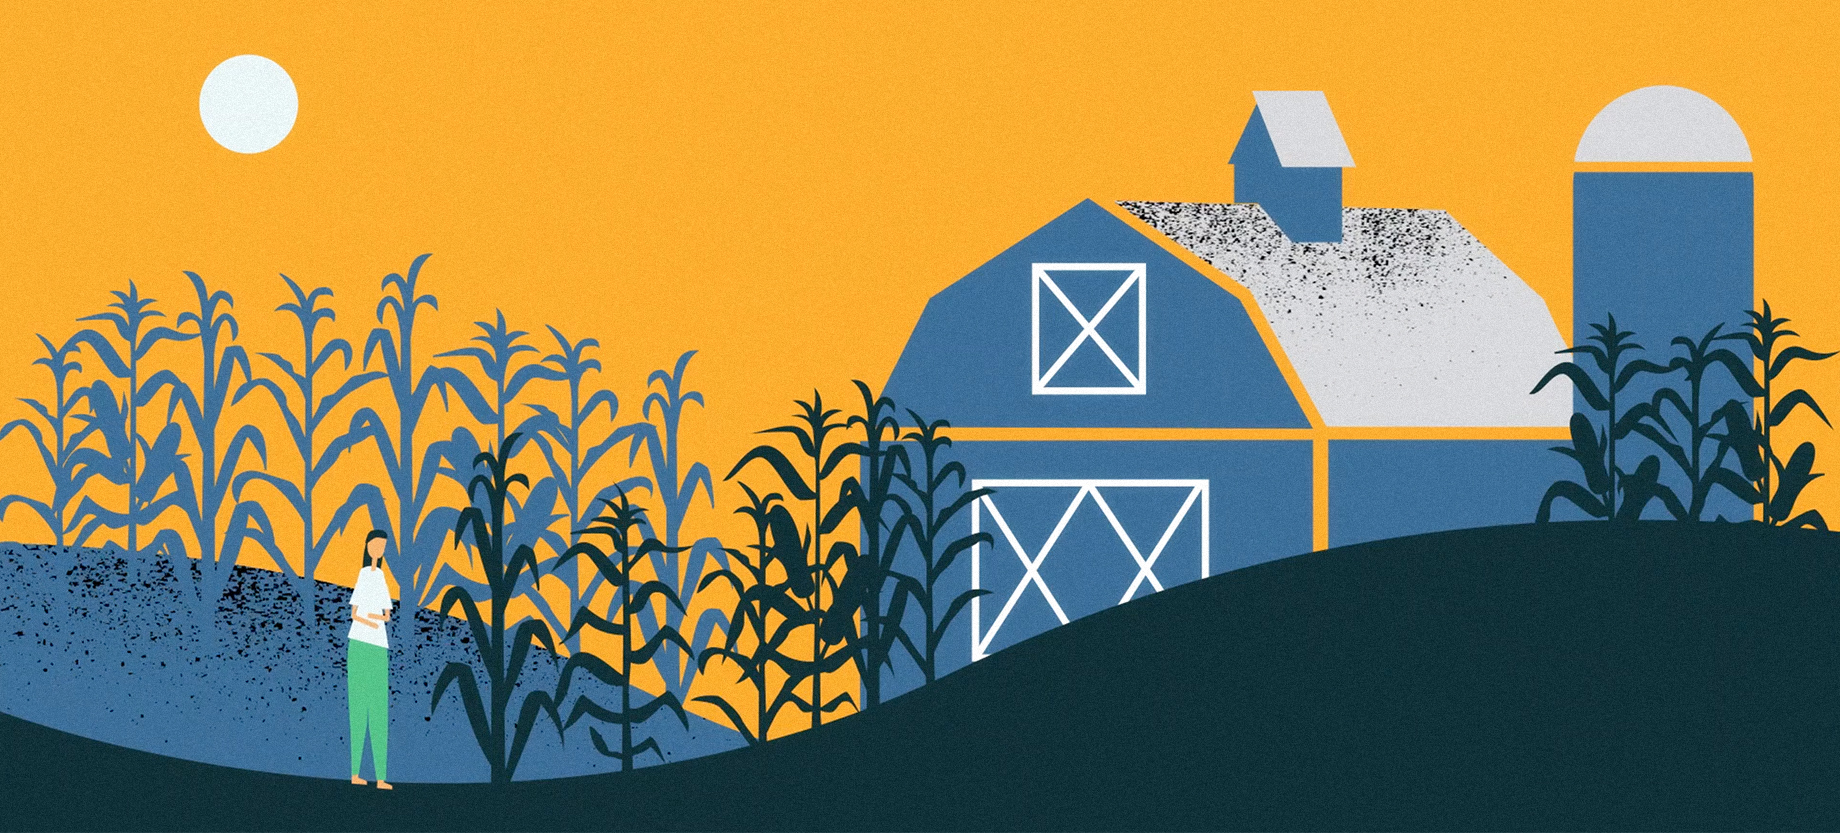 Des Moines Iowa Farm Animation For Embarc